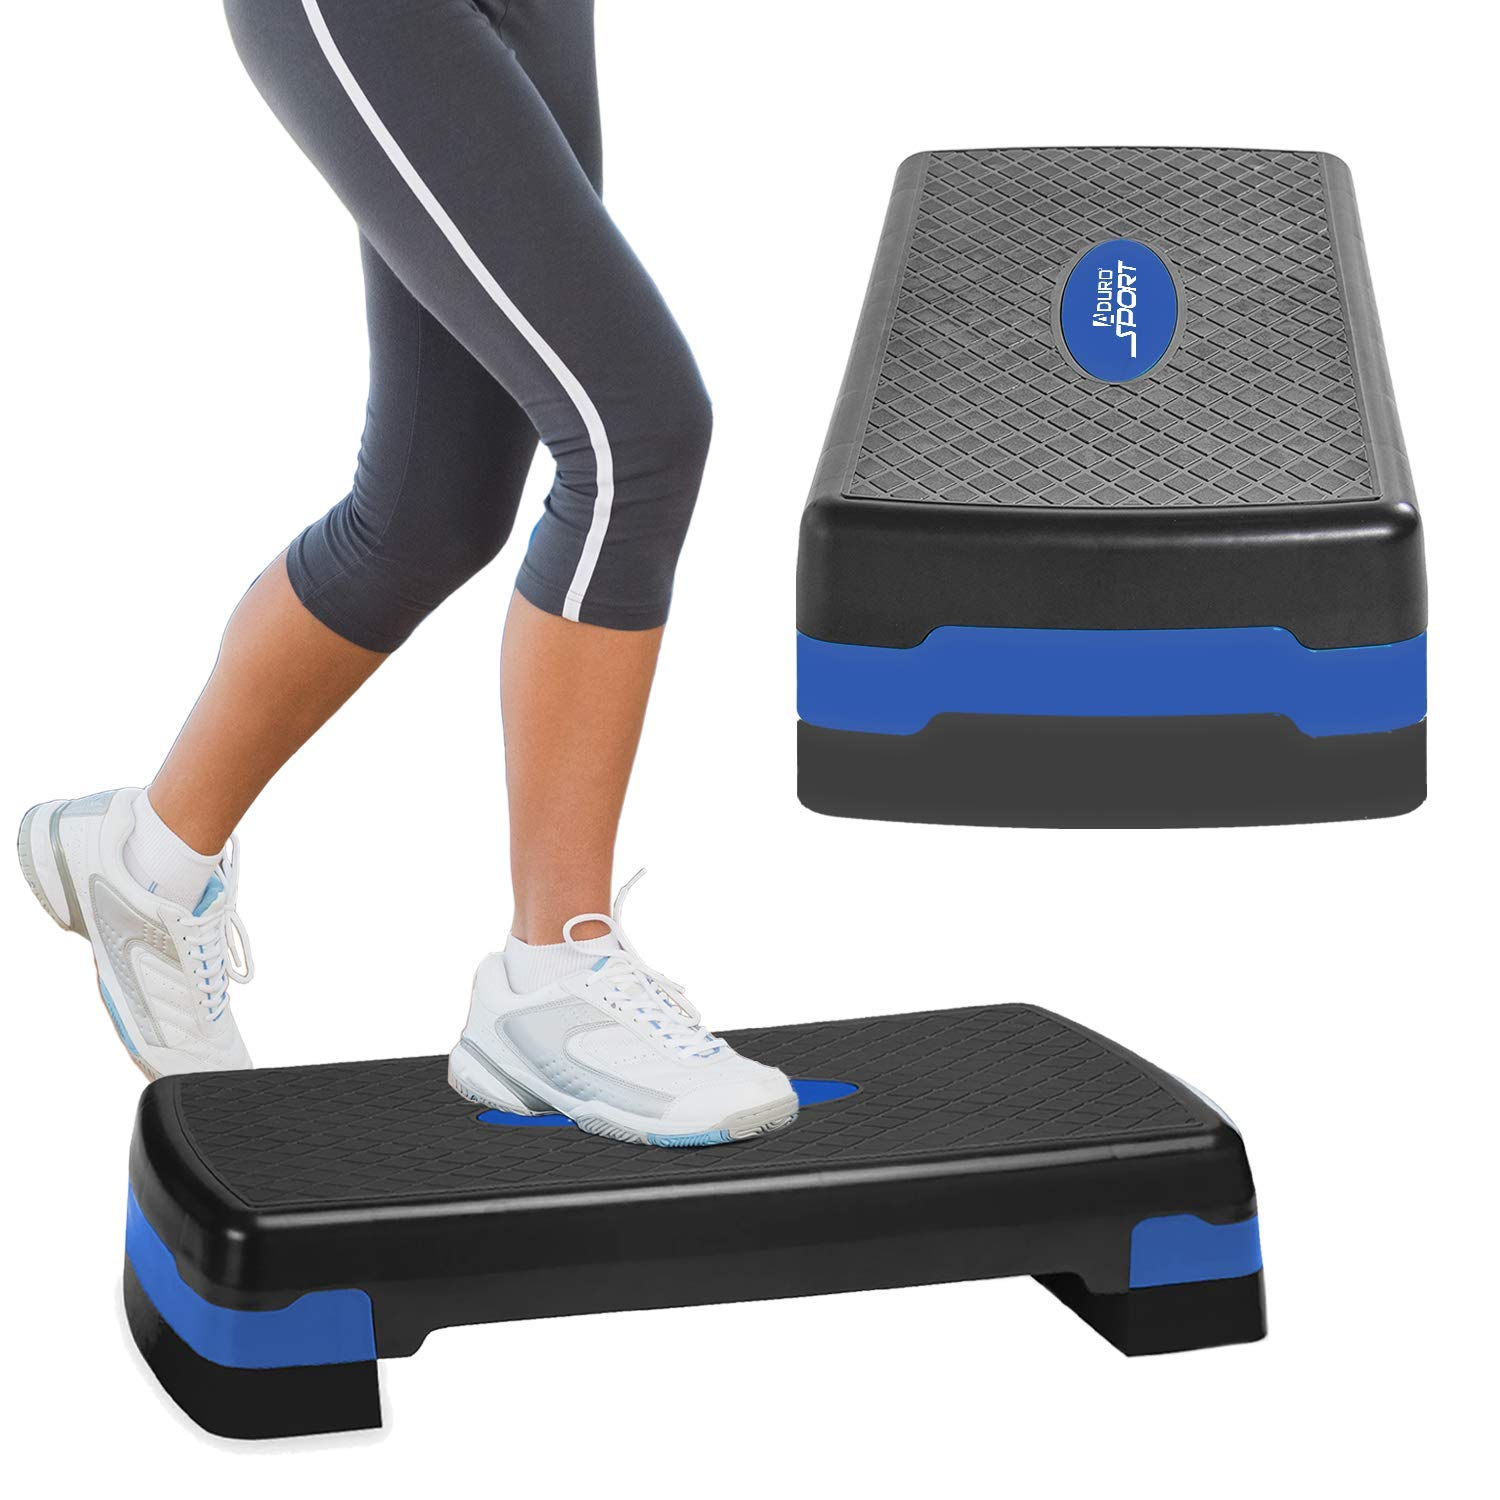 Aduro Sport Aerobic Exercise Step Deck, Adjustable Workout Fitness Stepper Exercise Platform with Risers